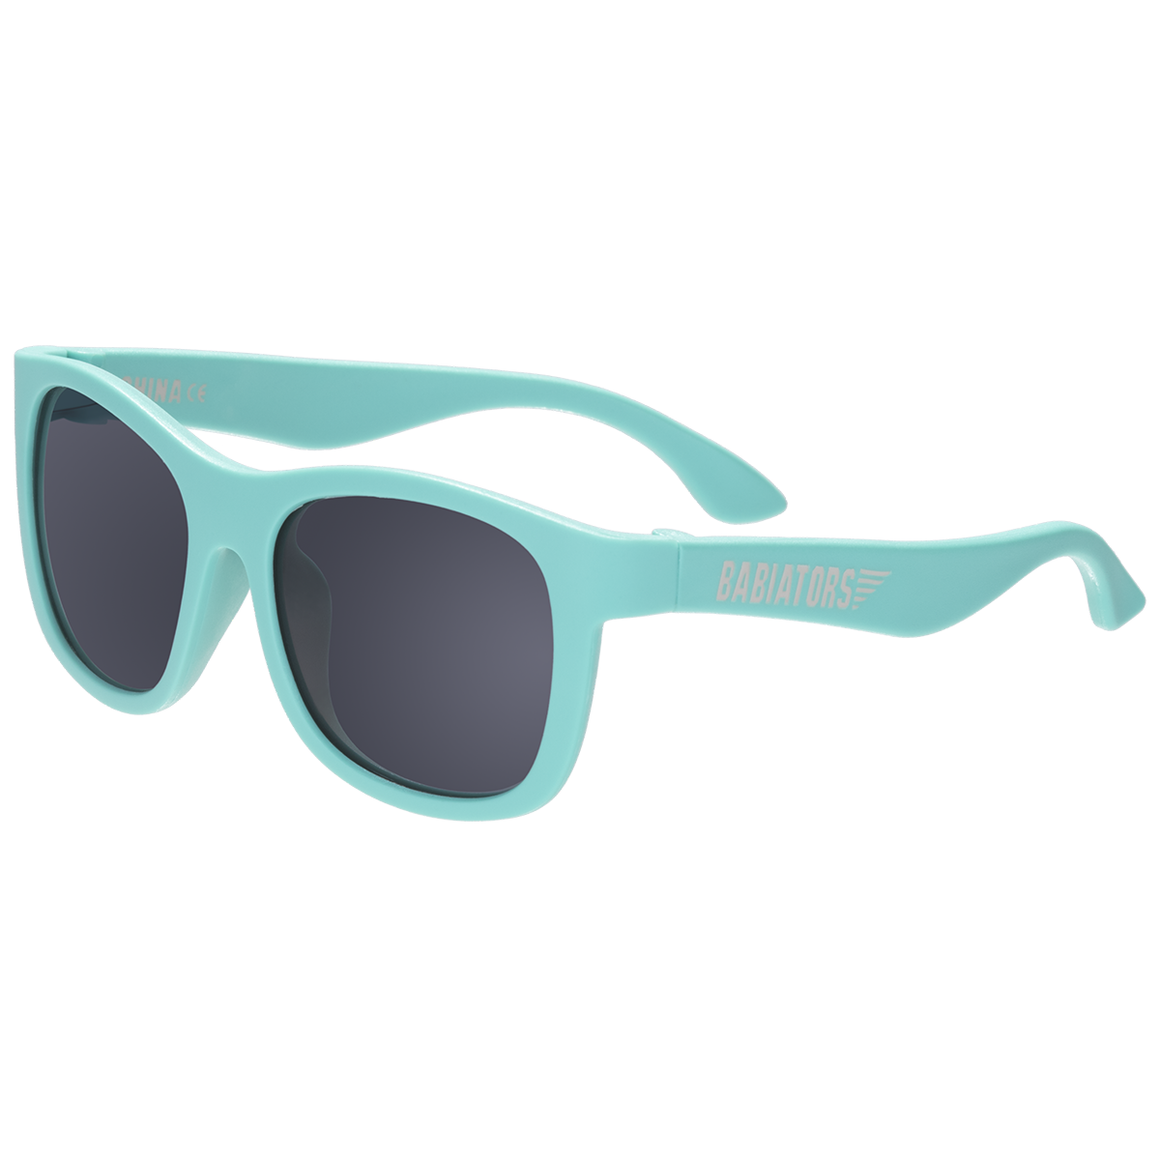 "Original navigator baby and toddler sunglasses in ""totally turquoise"". 100% UVA and UVB protection. Babiators."